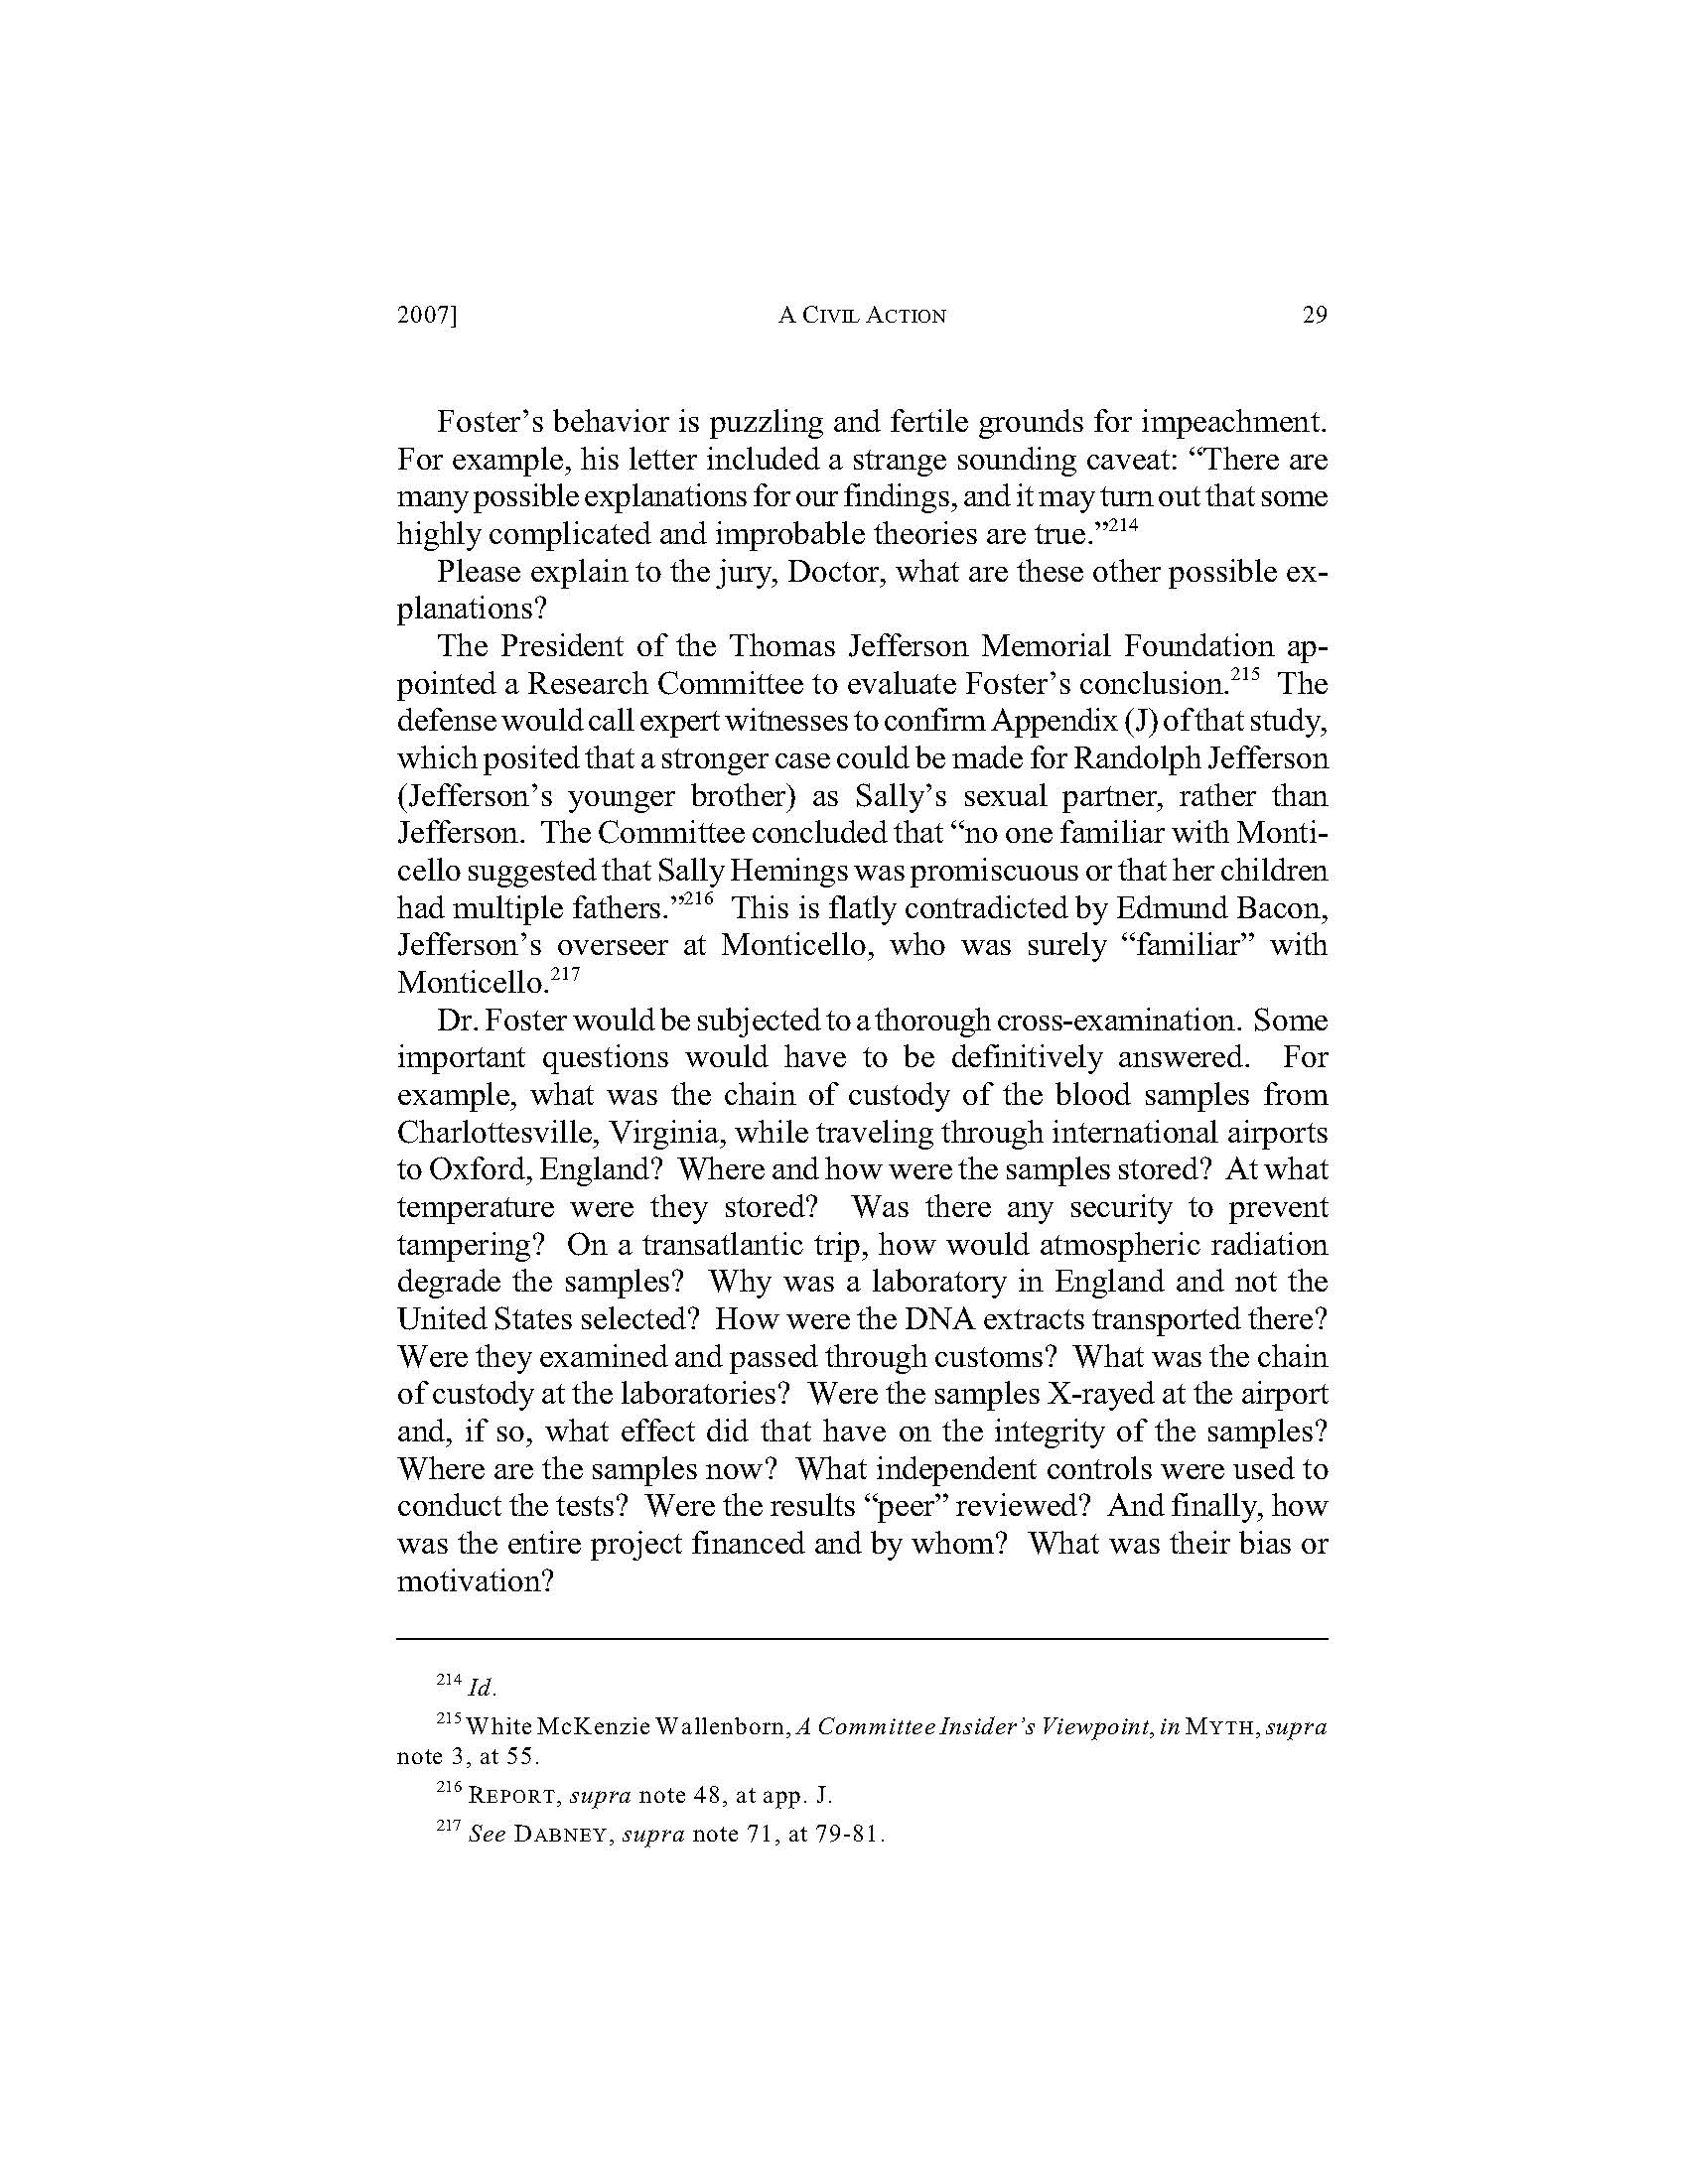 A Civil Action_Page_29.jpg